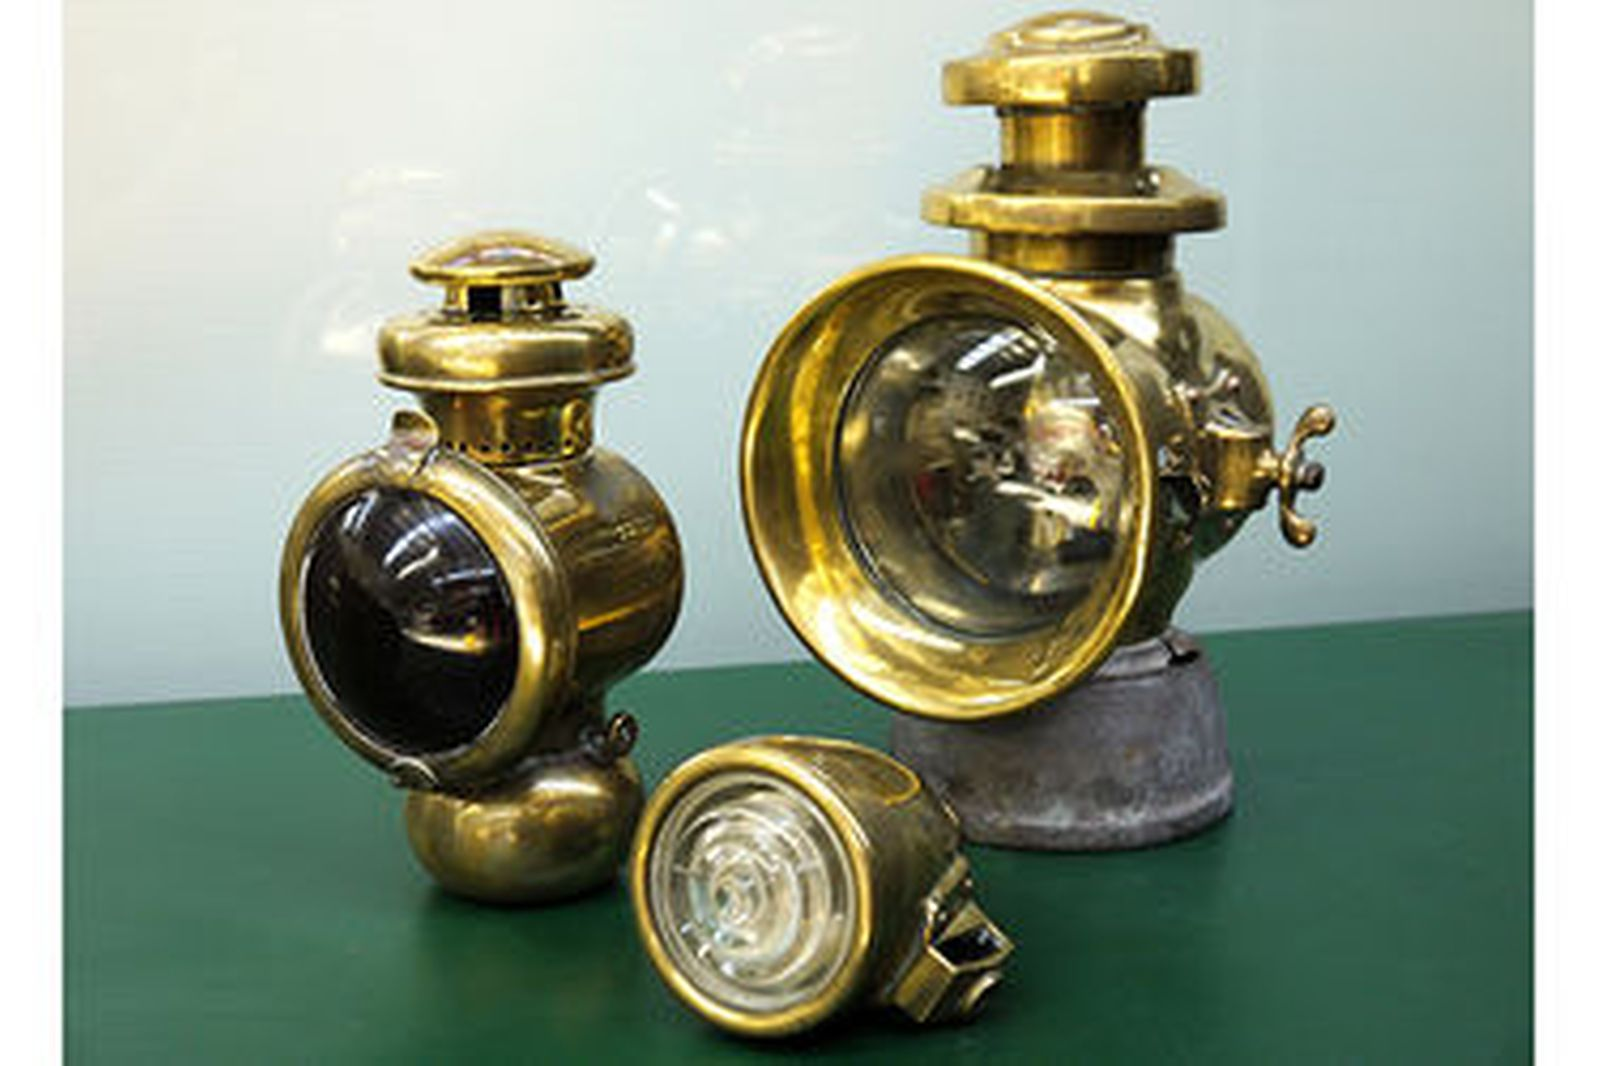 Lamps - 5 x Various Early Brass & Nickel Plated Lamps